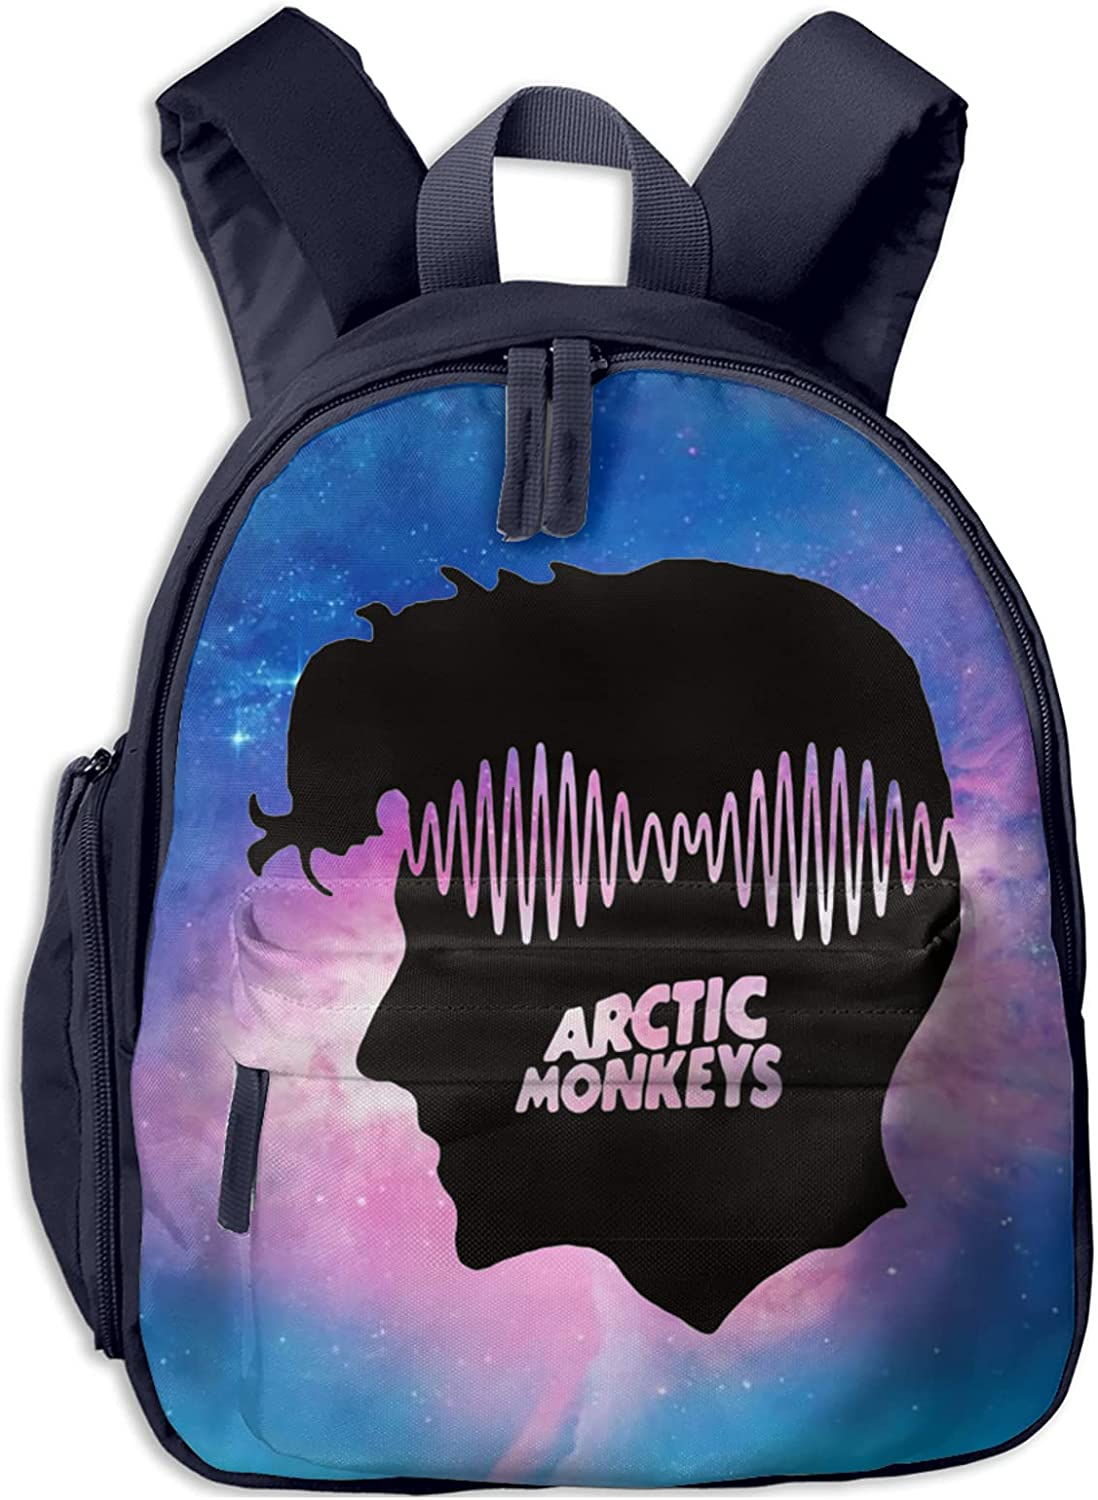 Arctic Monkeys Light Boys Max 43% OFF And Free Shipping New Girls Travel Backpack B Bag Book